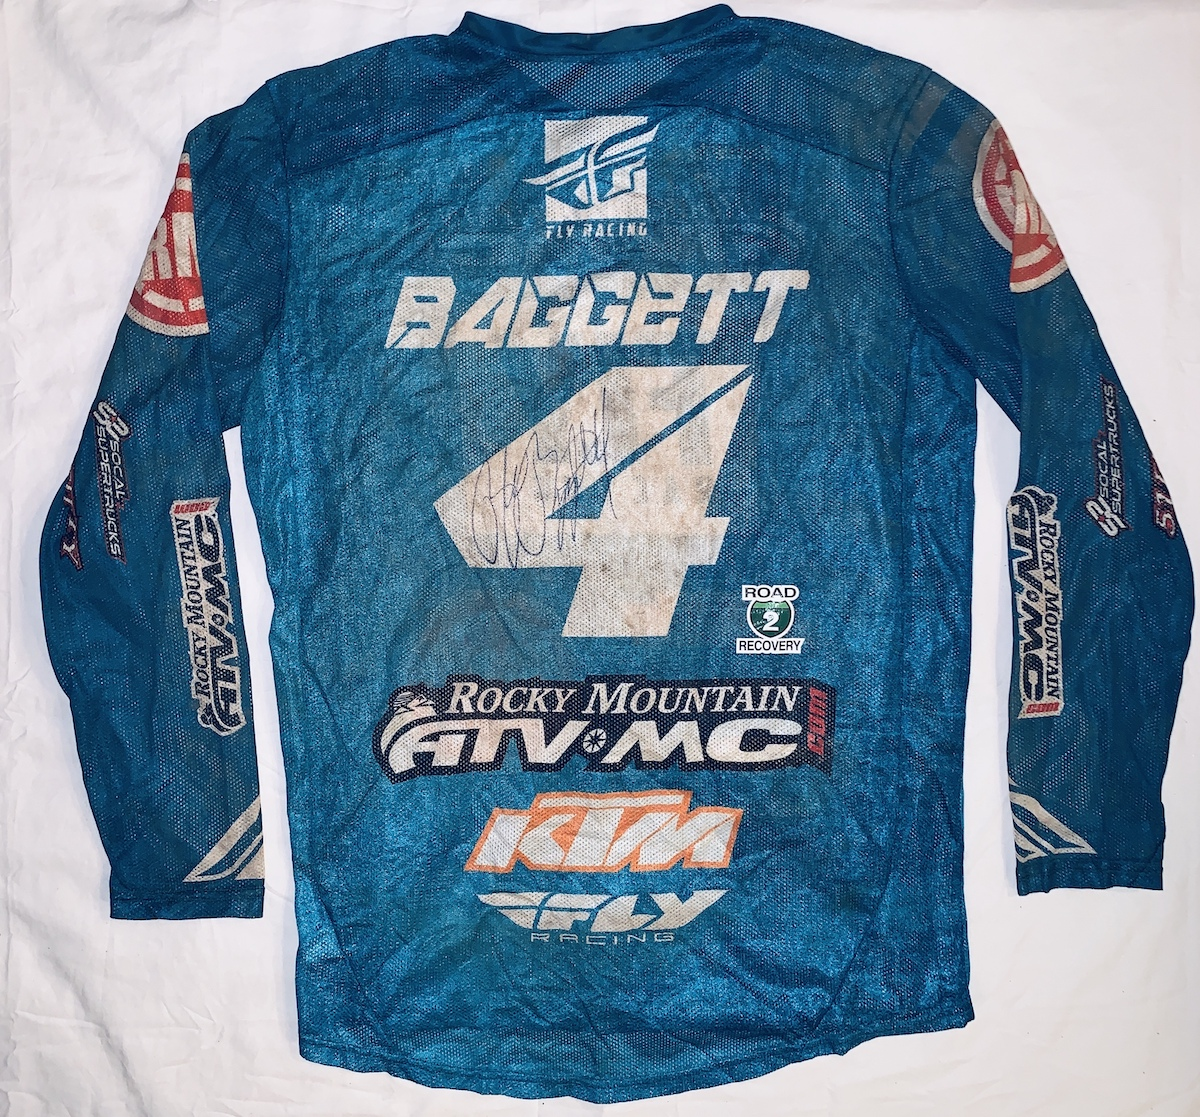 Road 2 Recovery Hosts Motocross Memorabilia Mania eBay Auction - Baggett race jersey